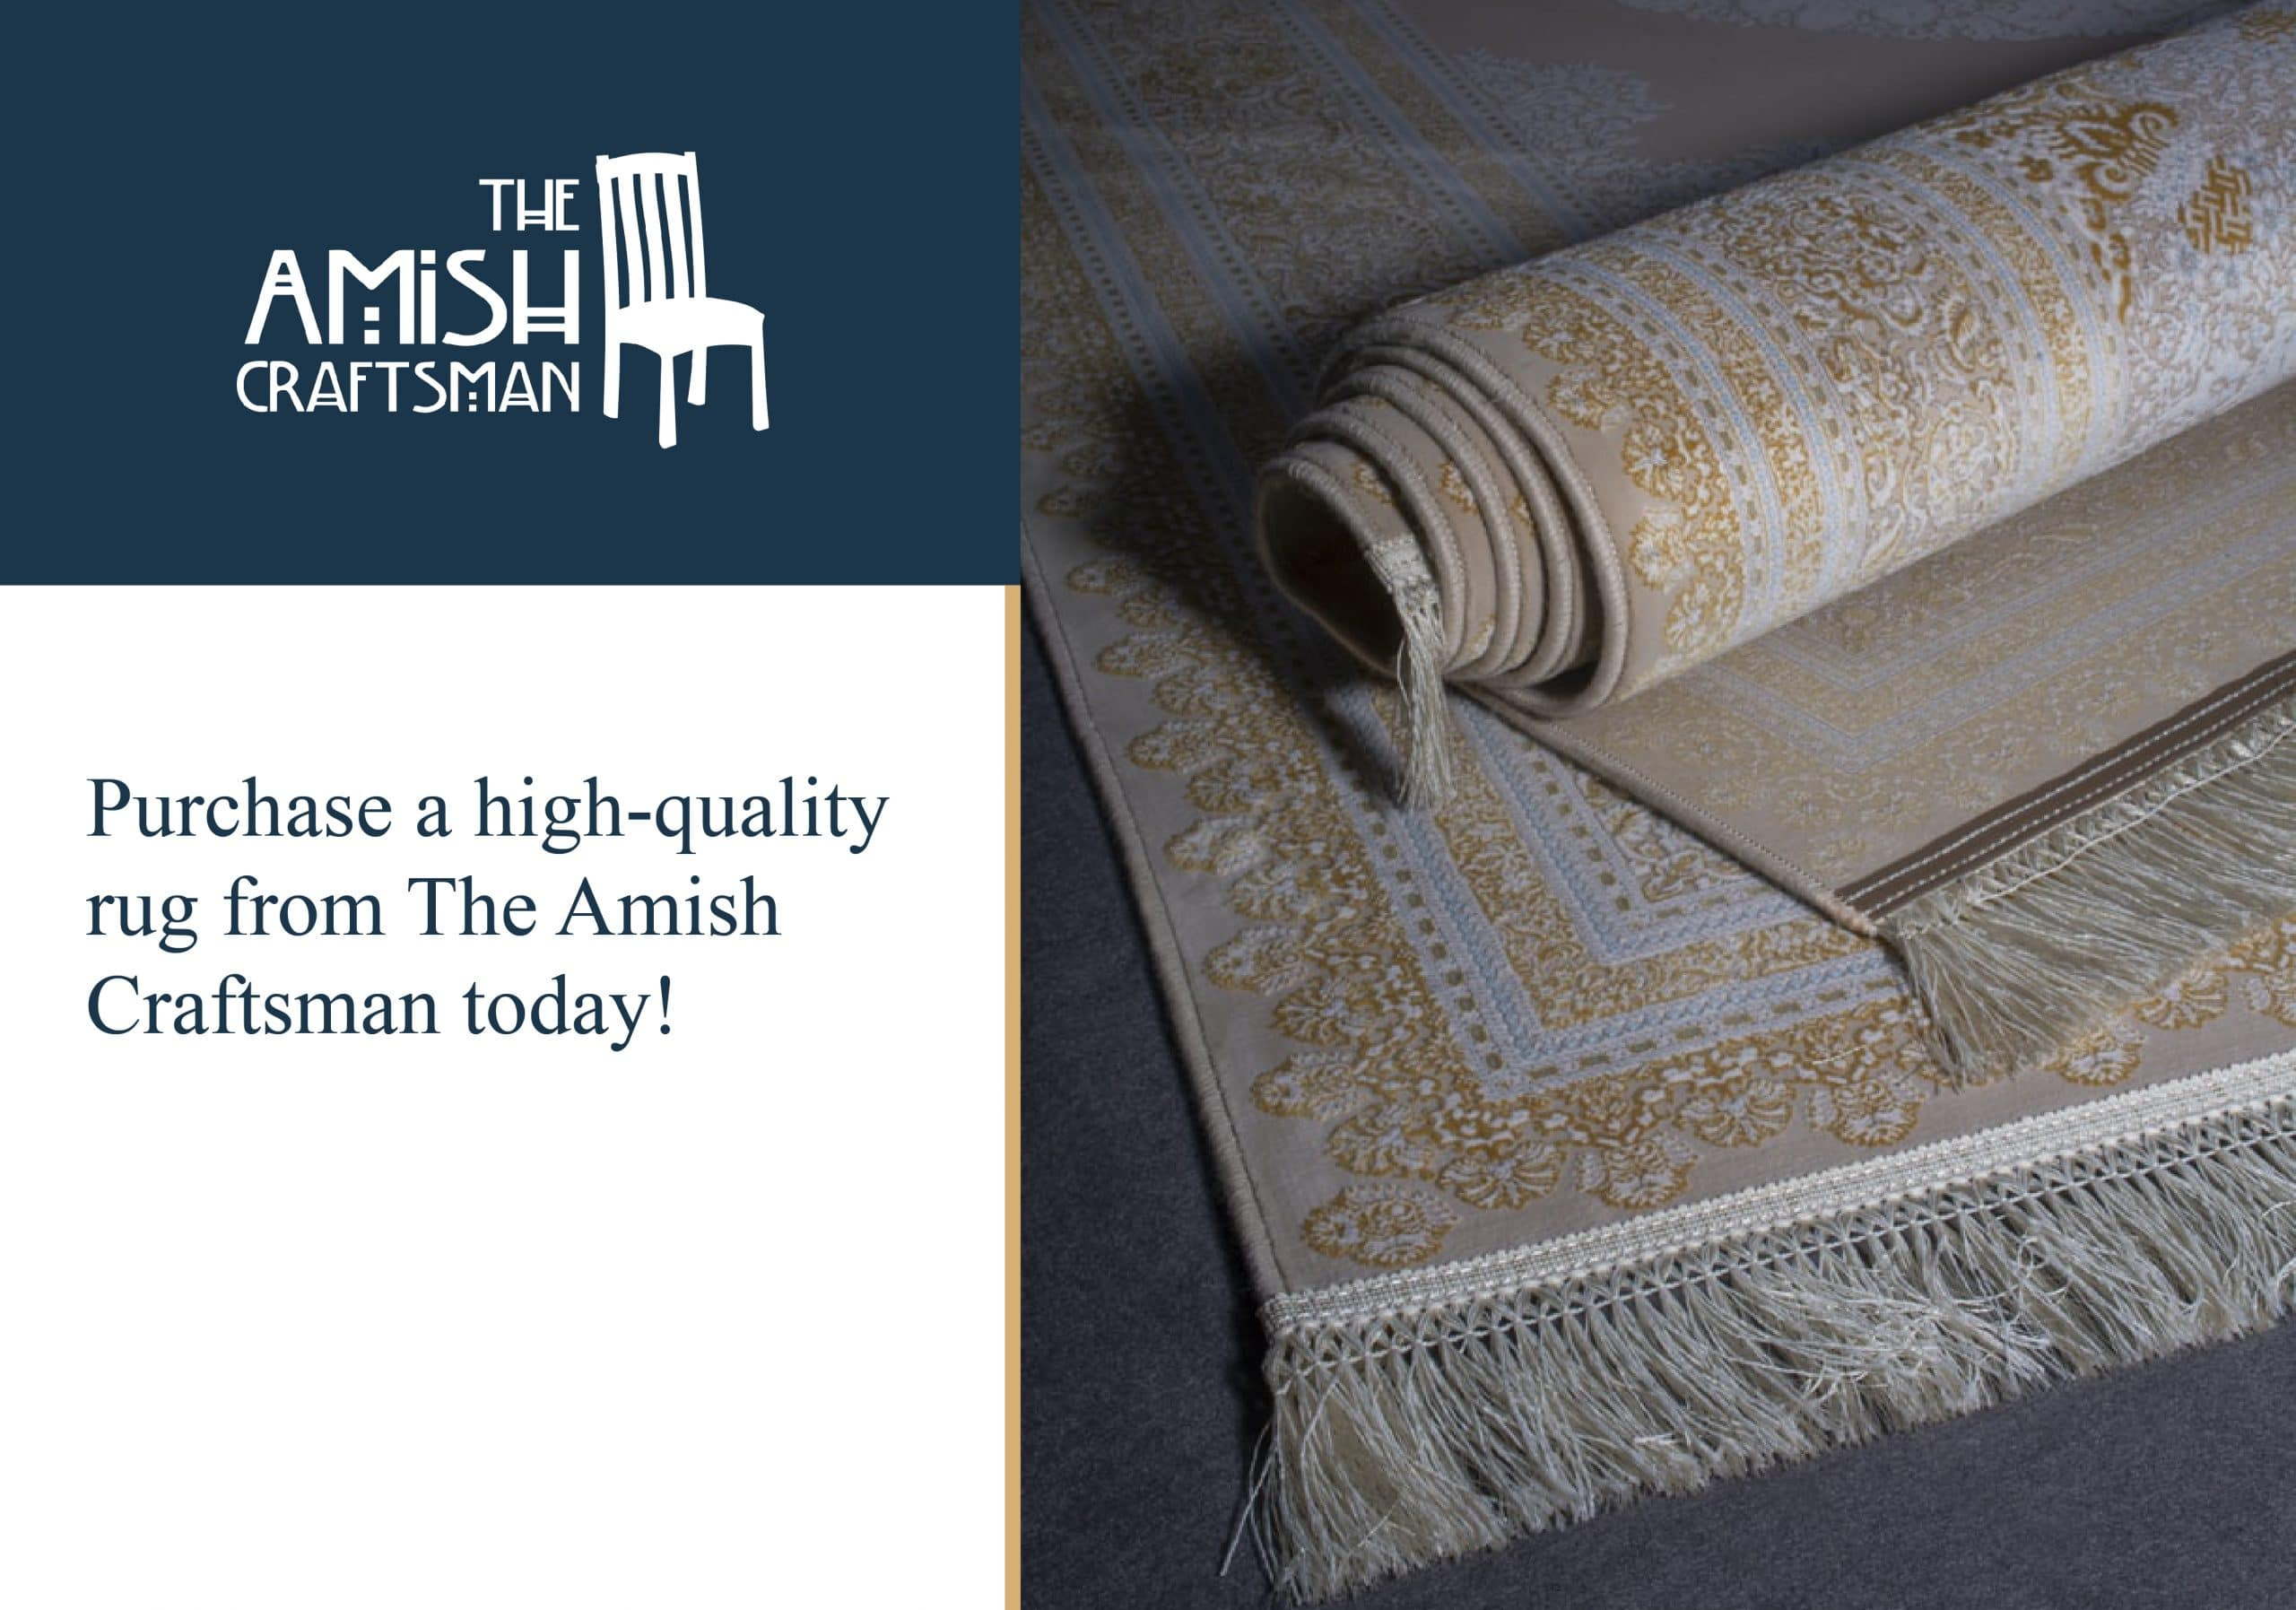 Get high quality rugs from the Amish Craftsman